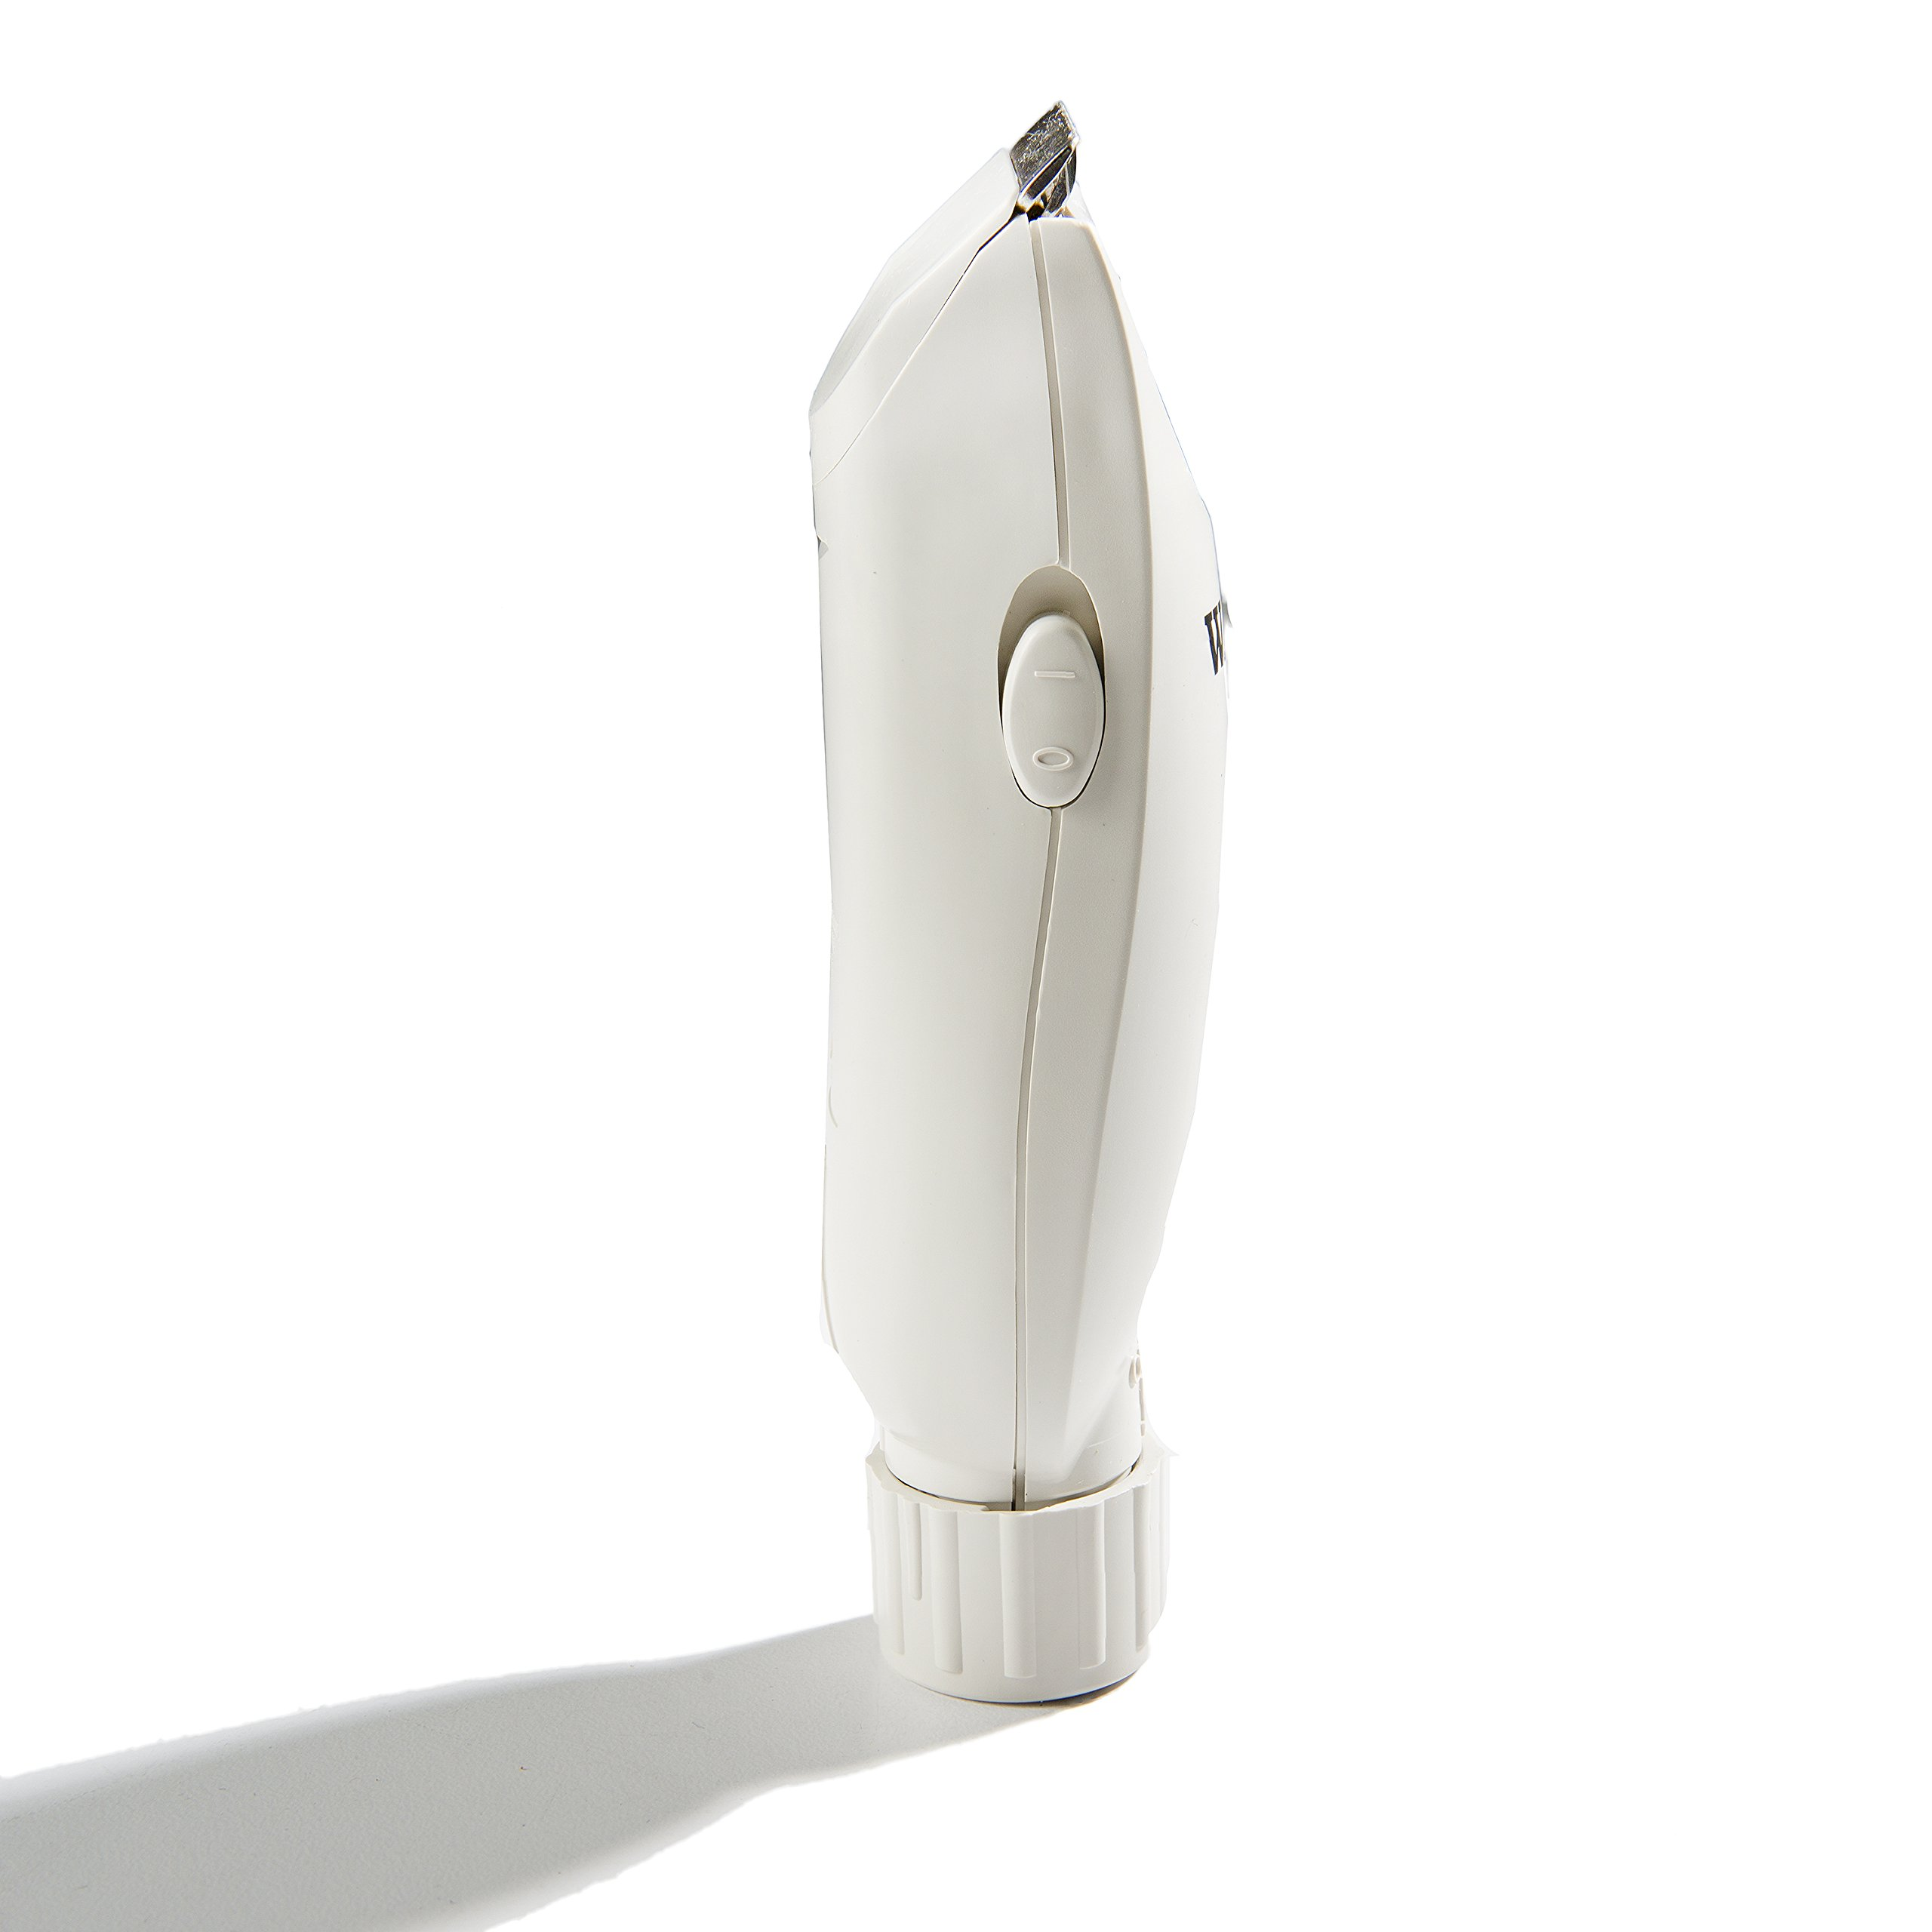 Wahl Professional Peanut Cordless Clipper/Trimmer #8663, White - Great On-the-Go Trimmer for Barbers and Stylists - Powerful Rotary Motor by Wahl Professional (Image #2)